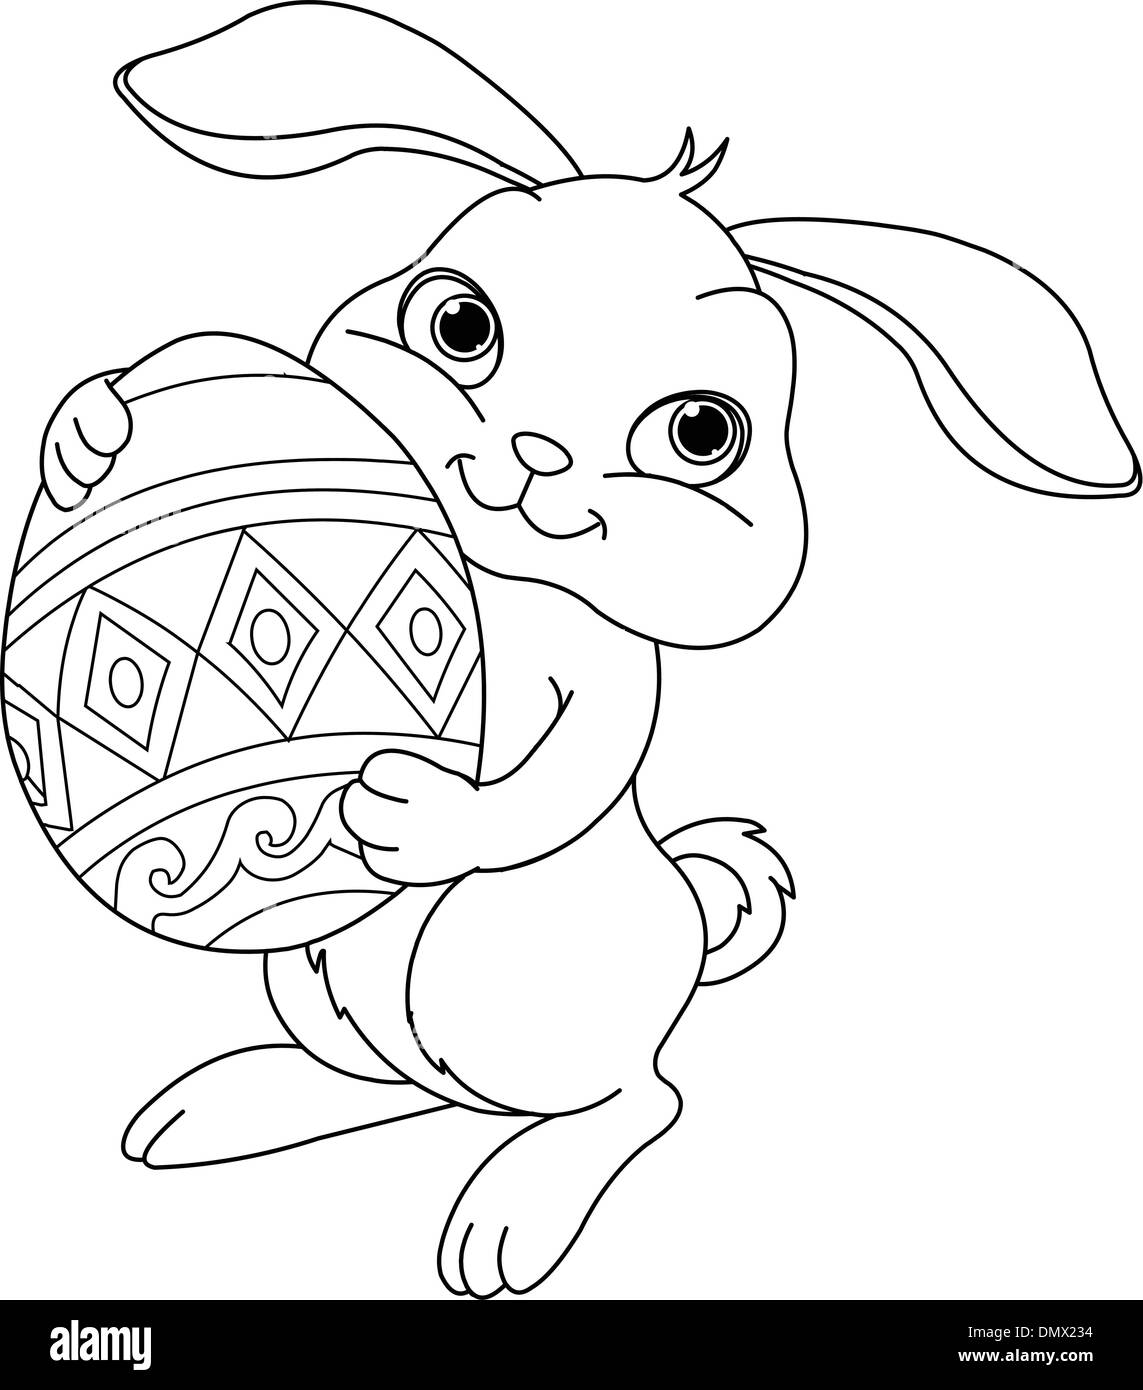 Easter Bunny Coloring Page Stock Vector Art